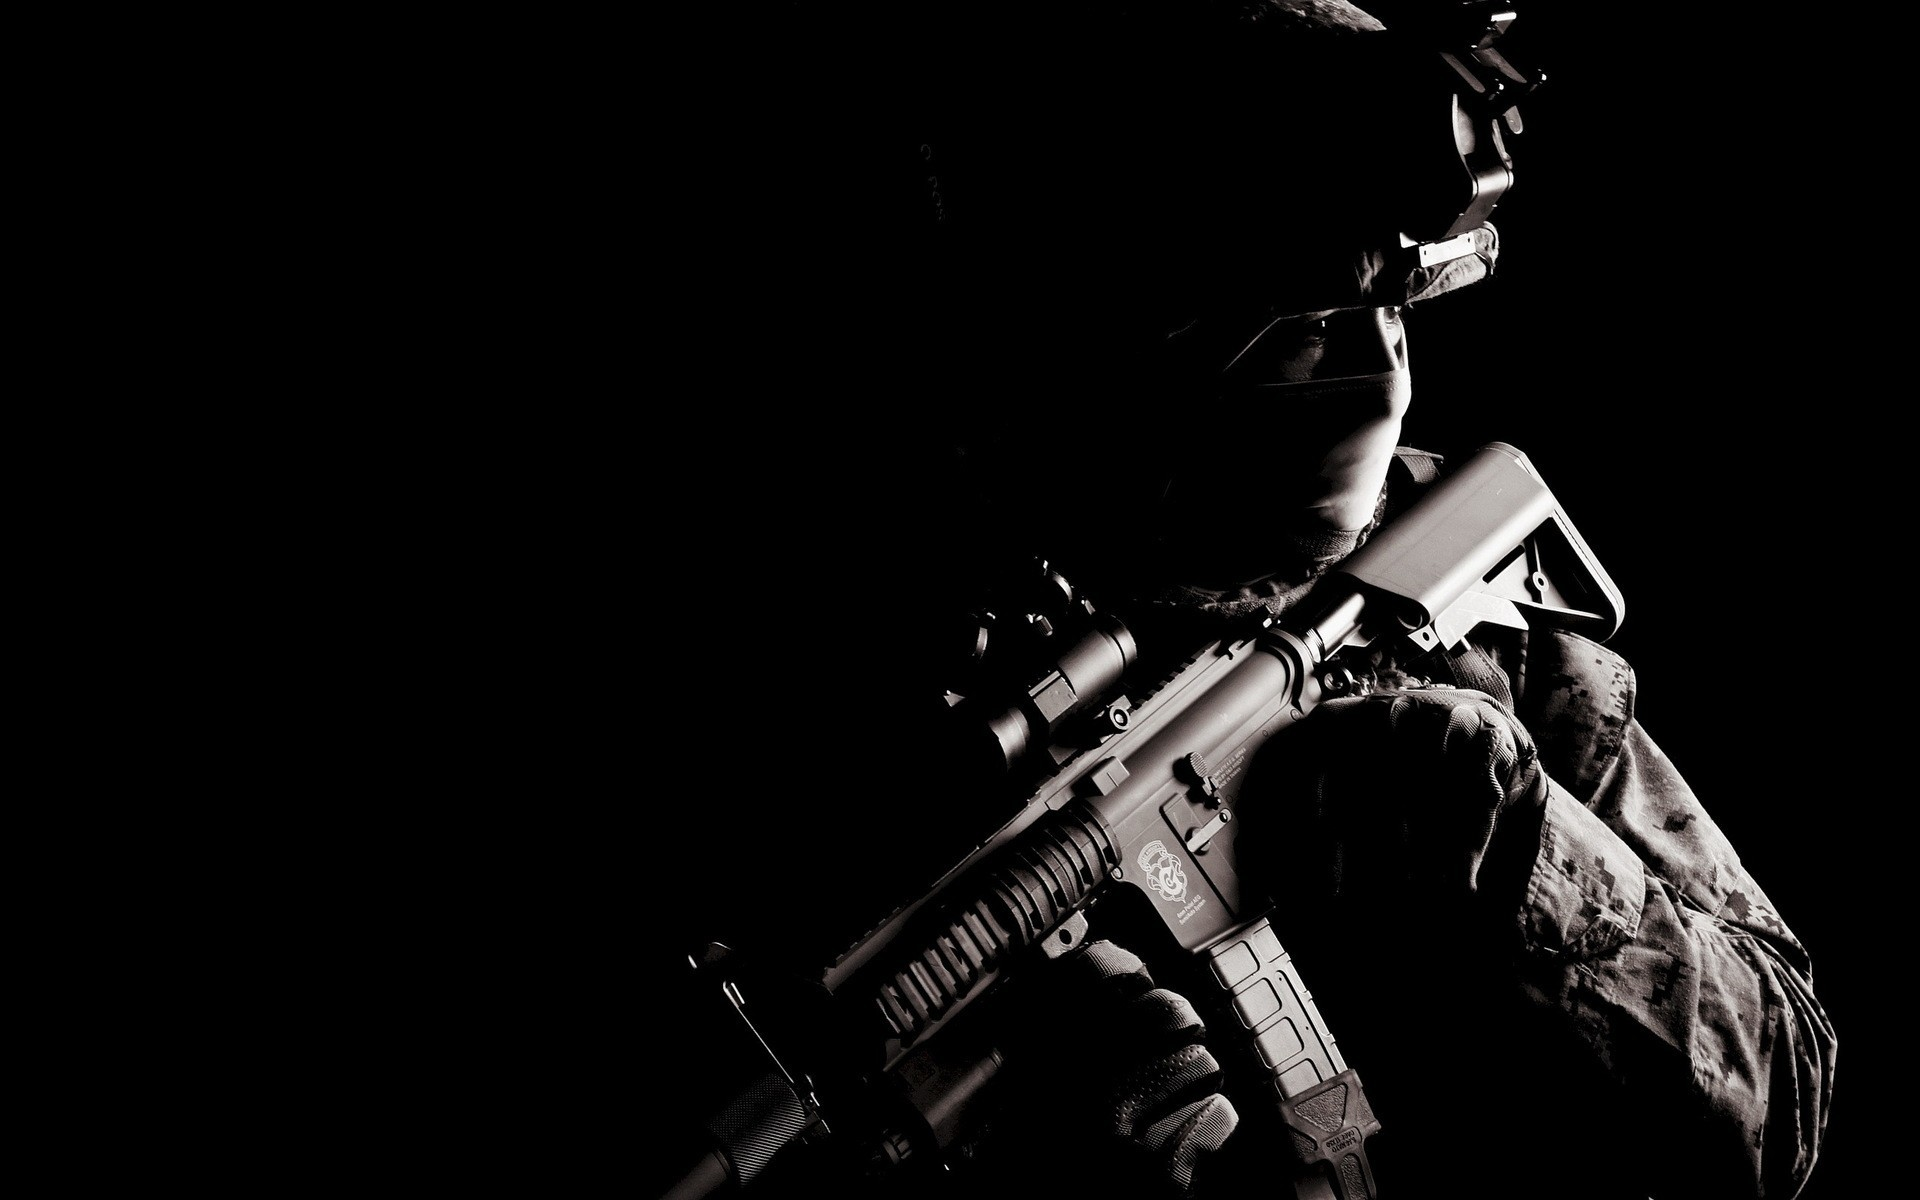 1920x1200  Navy Seals Sniper Wallpaper #6913258